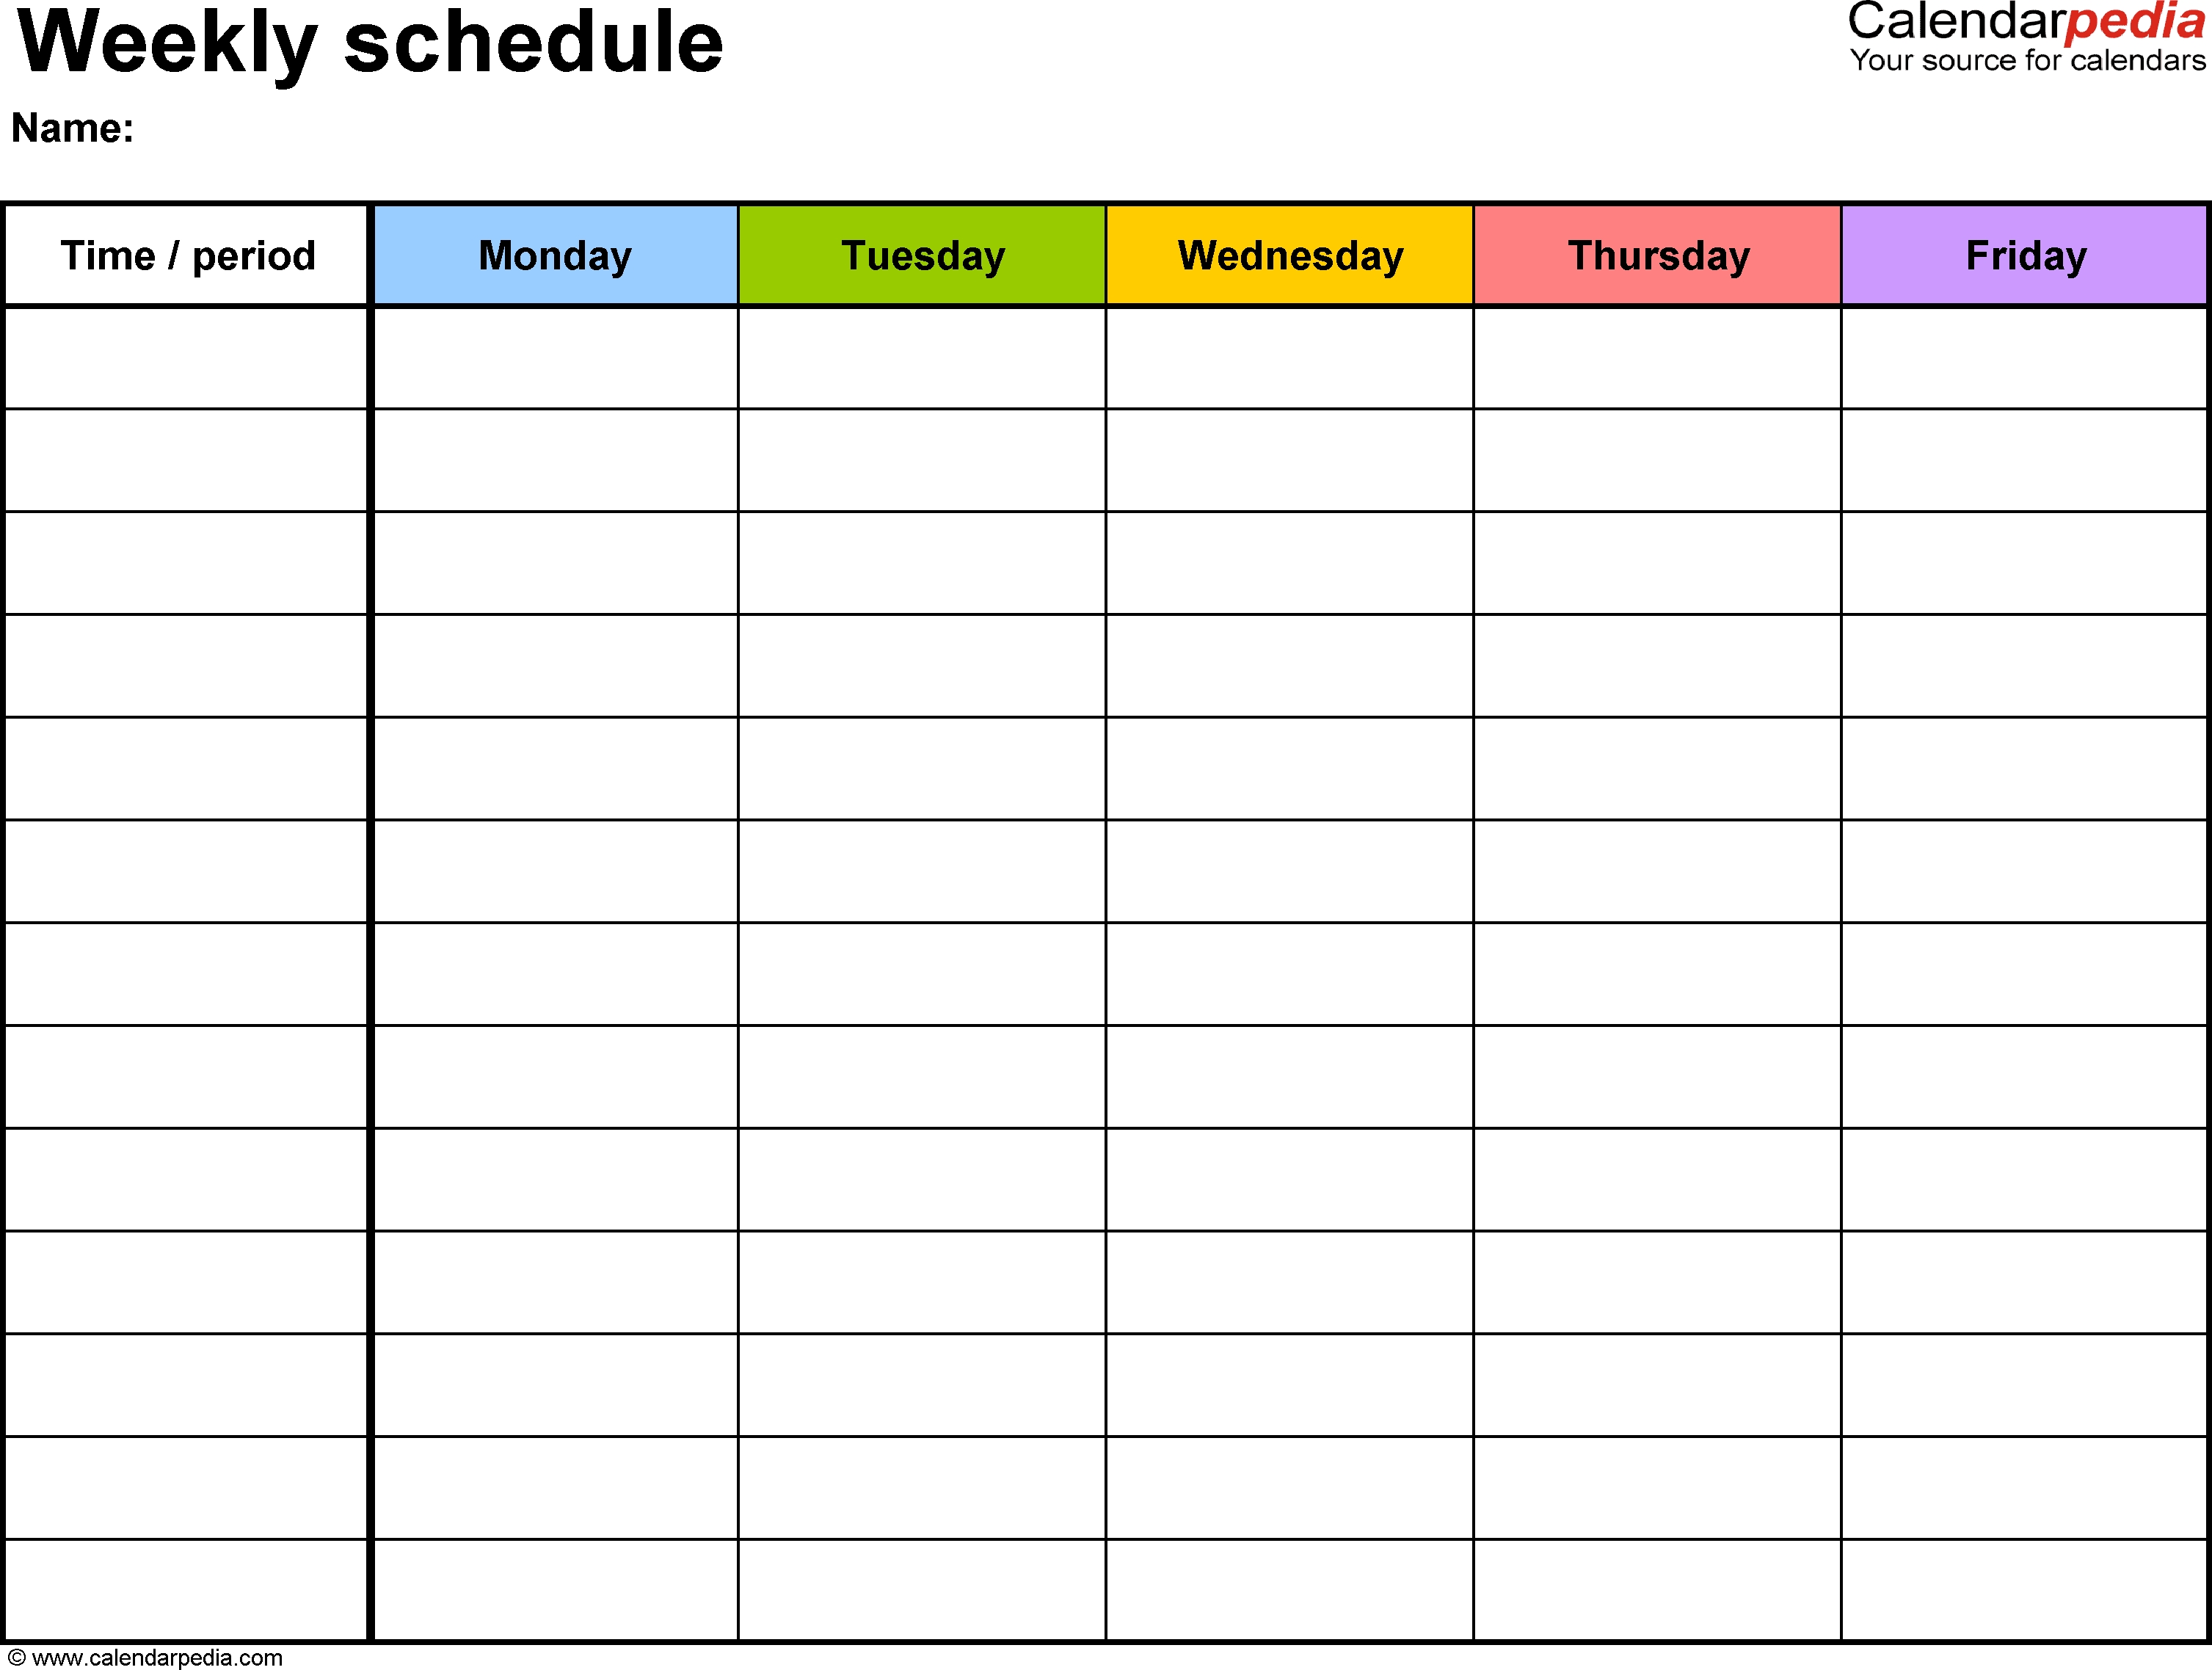 Free Weekly Schedule Templates For Word - 18 Templates within Free 5 Day Calendar Template